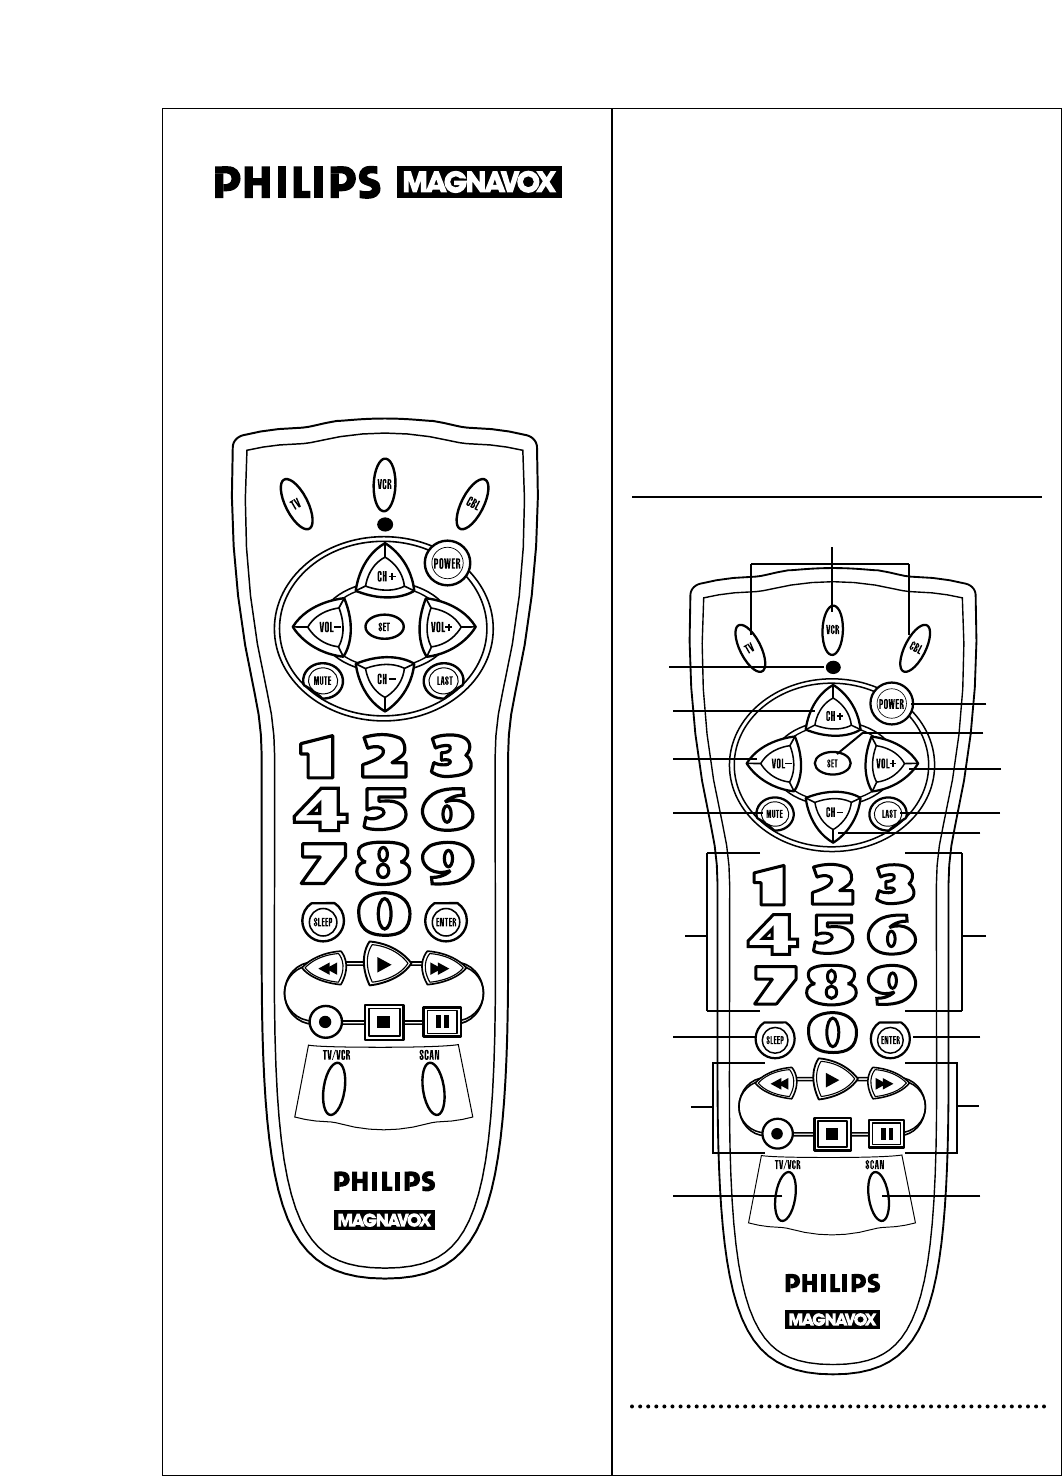 philips universal remote rem110 user guide manualsonline com rh tv manualsonline com philips magnavox universal remote cl010 manual philips magnavox remote control